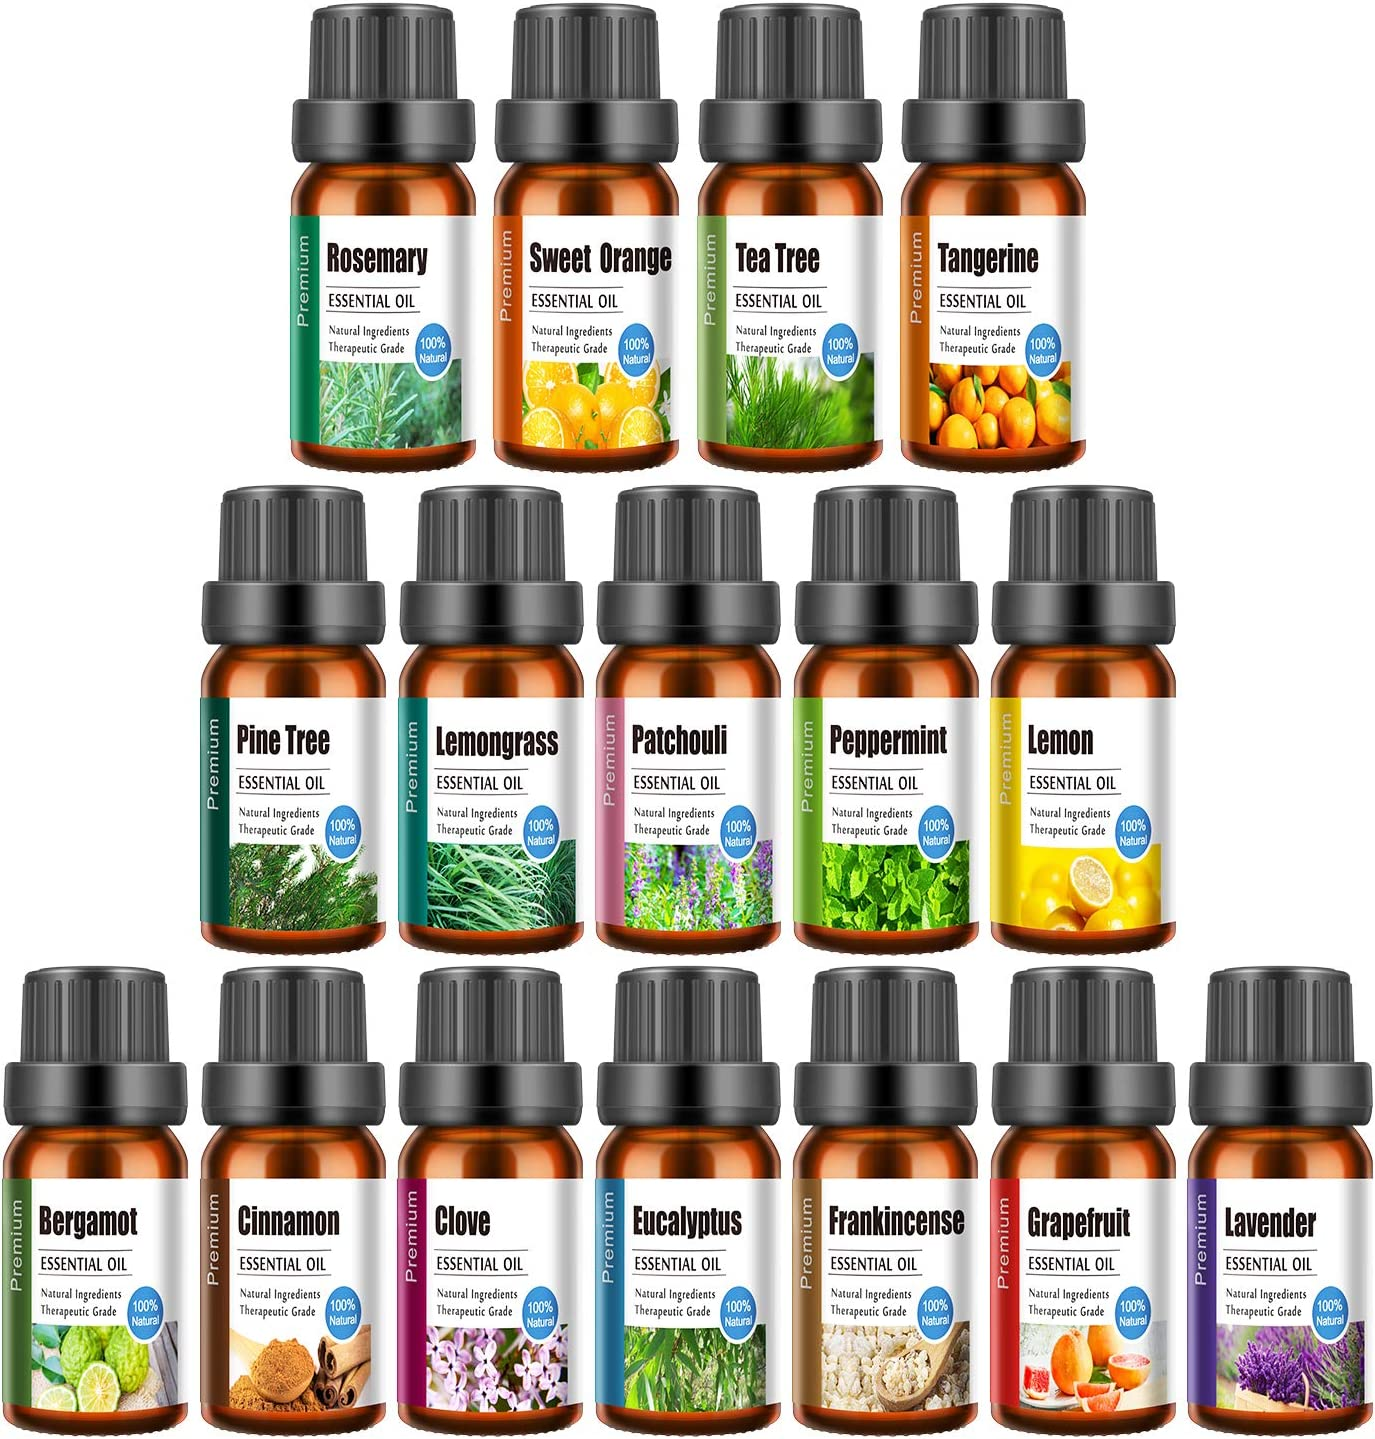 Top 16 Aromatherapy Essential Oil Set,100% Pure Natural Essential Oils Sets Perfect for Diffuser, Home Fragrance, Include Lavender, Rosemary, Peppermint, Lemongrass,Tea Tree Oils and 11 More, 10 ML